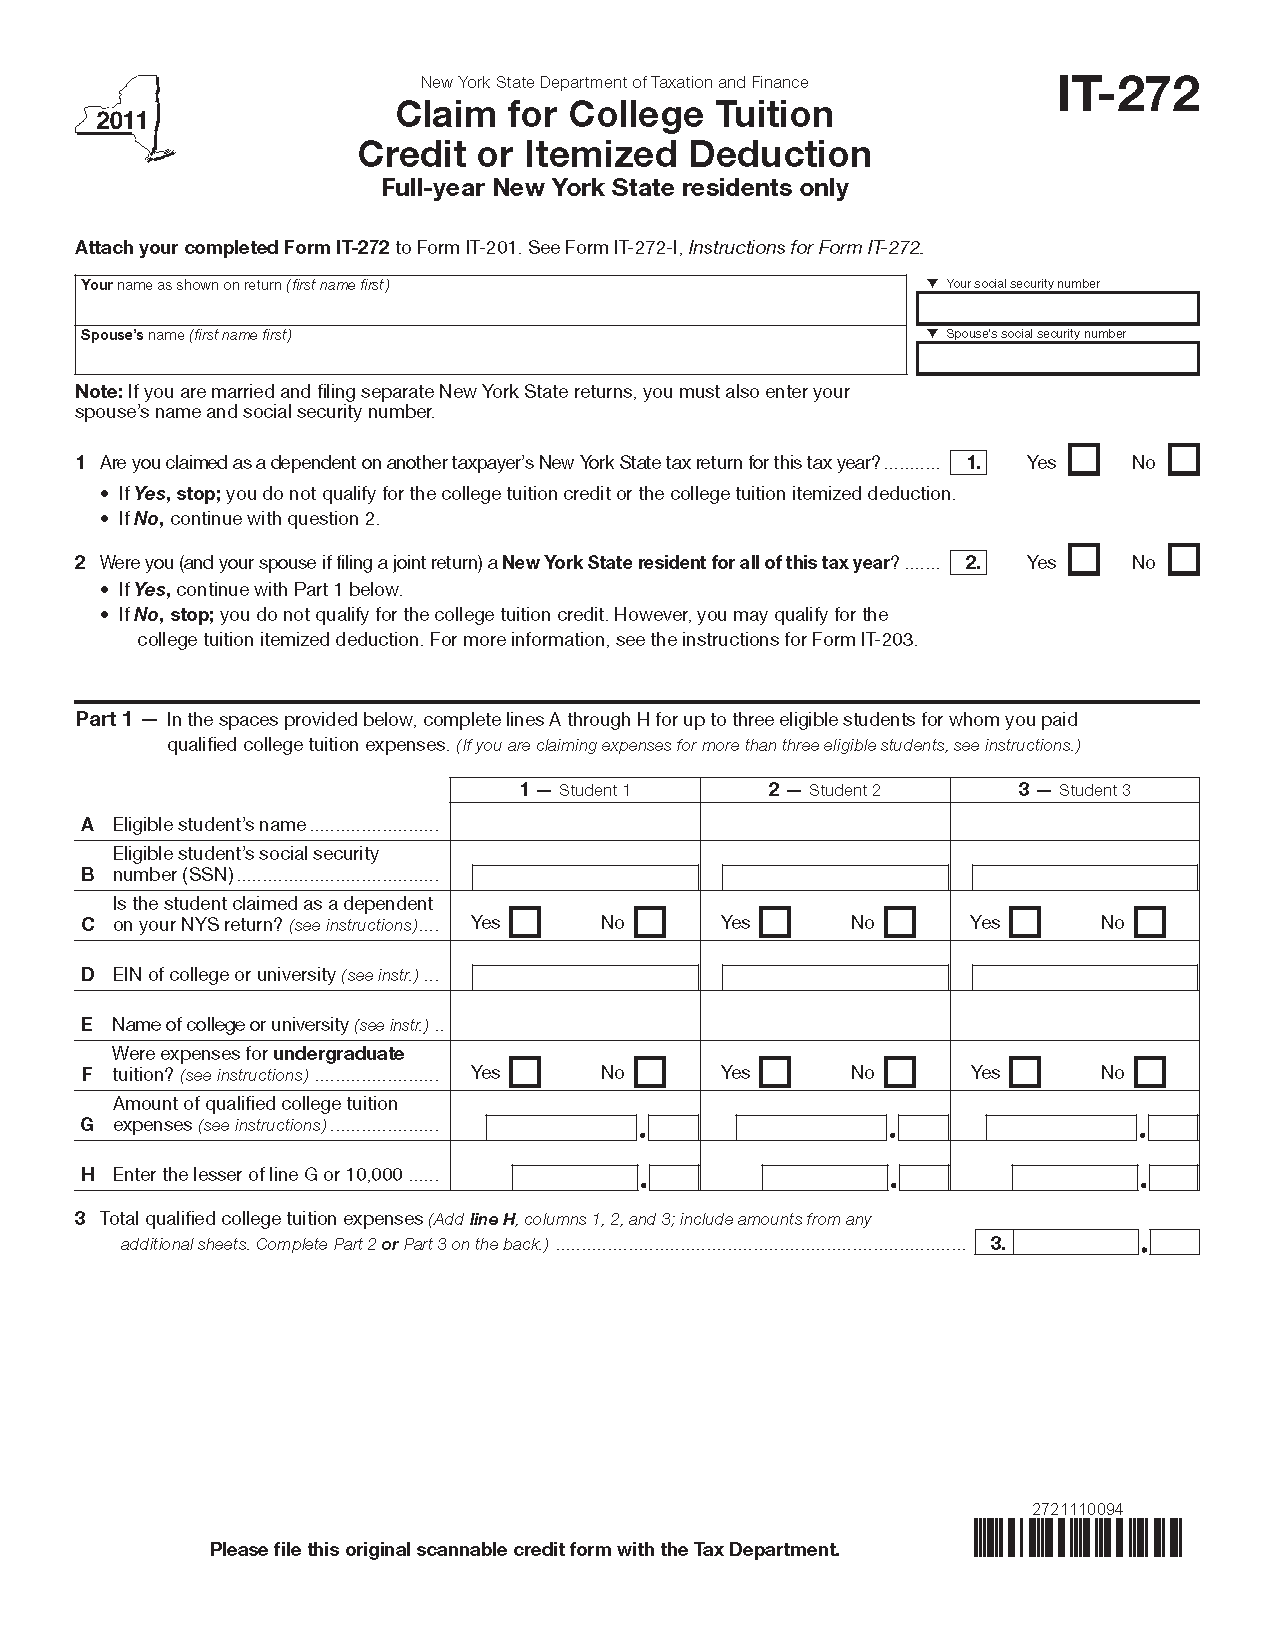 Form It 272 Fill In Claim For College Tuition Credit Or